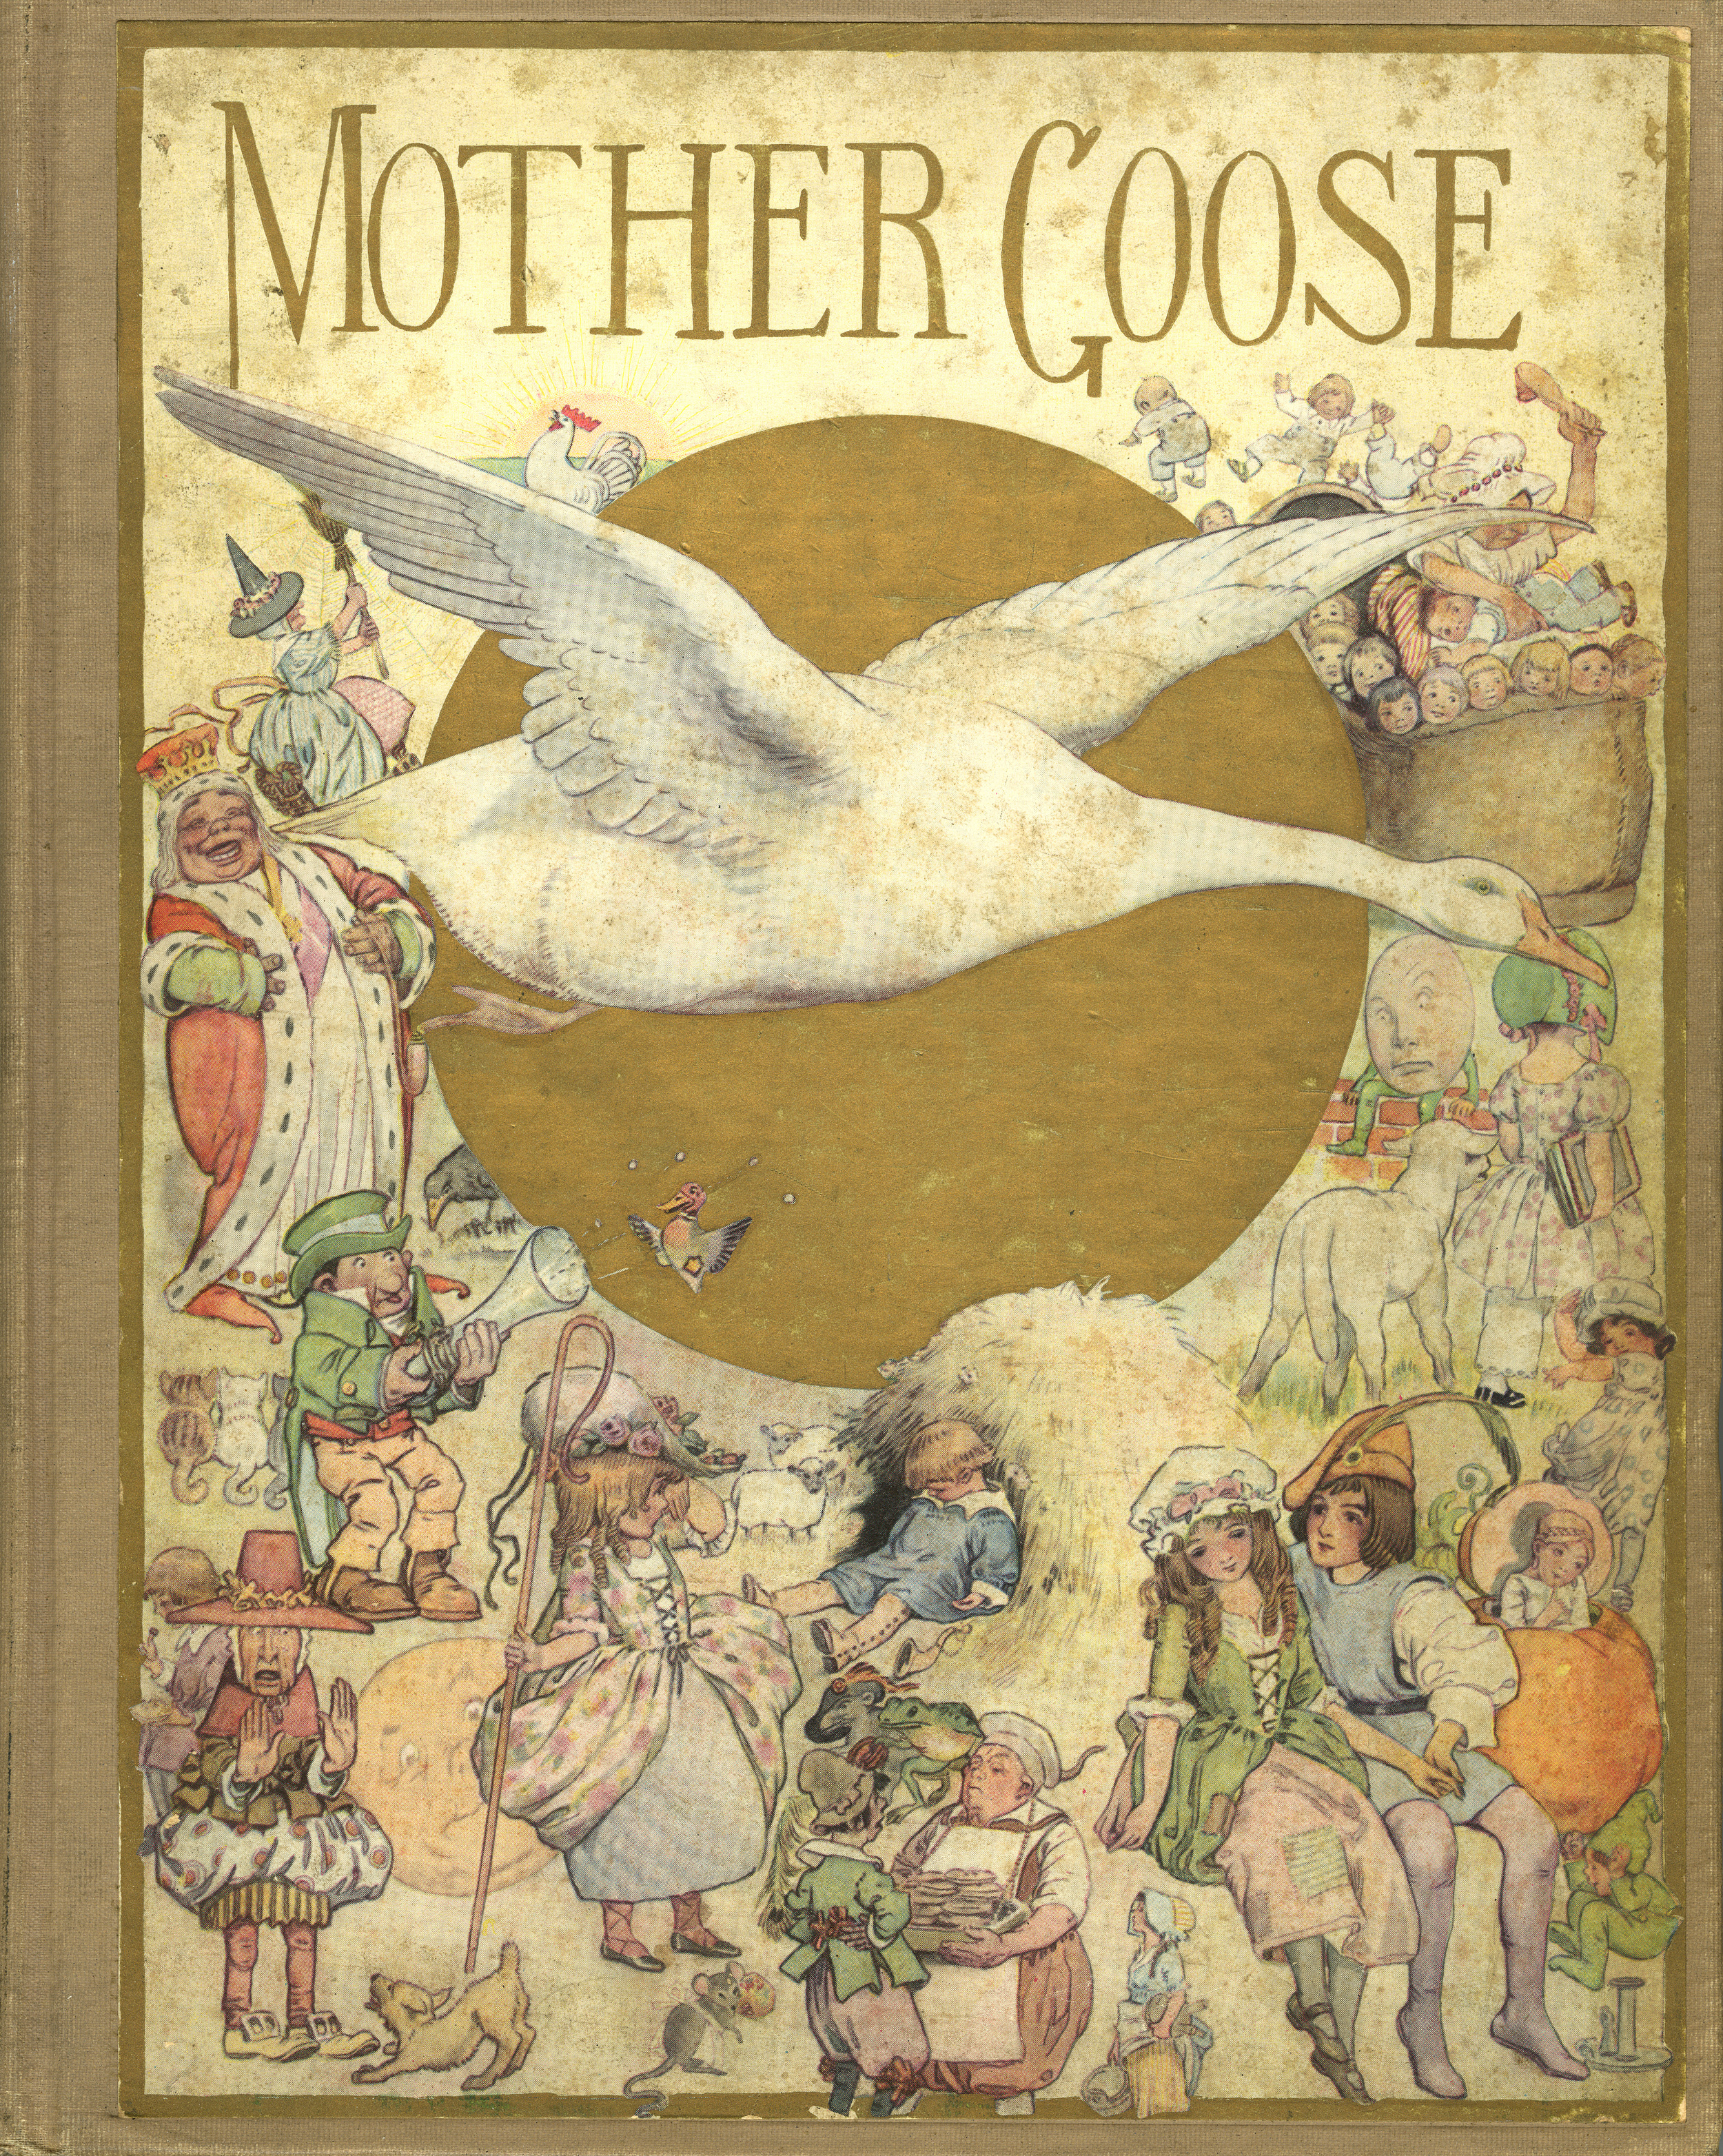 FY Cory, Front Cover for  The Fanny Cory   Mother Goose. Bobs-Merrill Company Publishers. 1913.